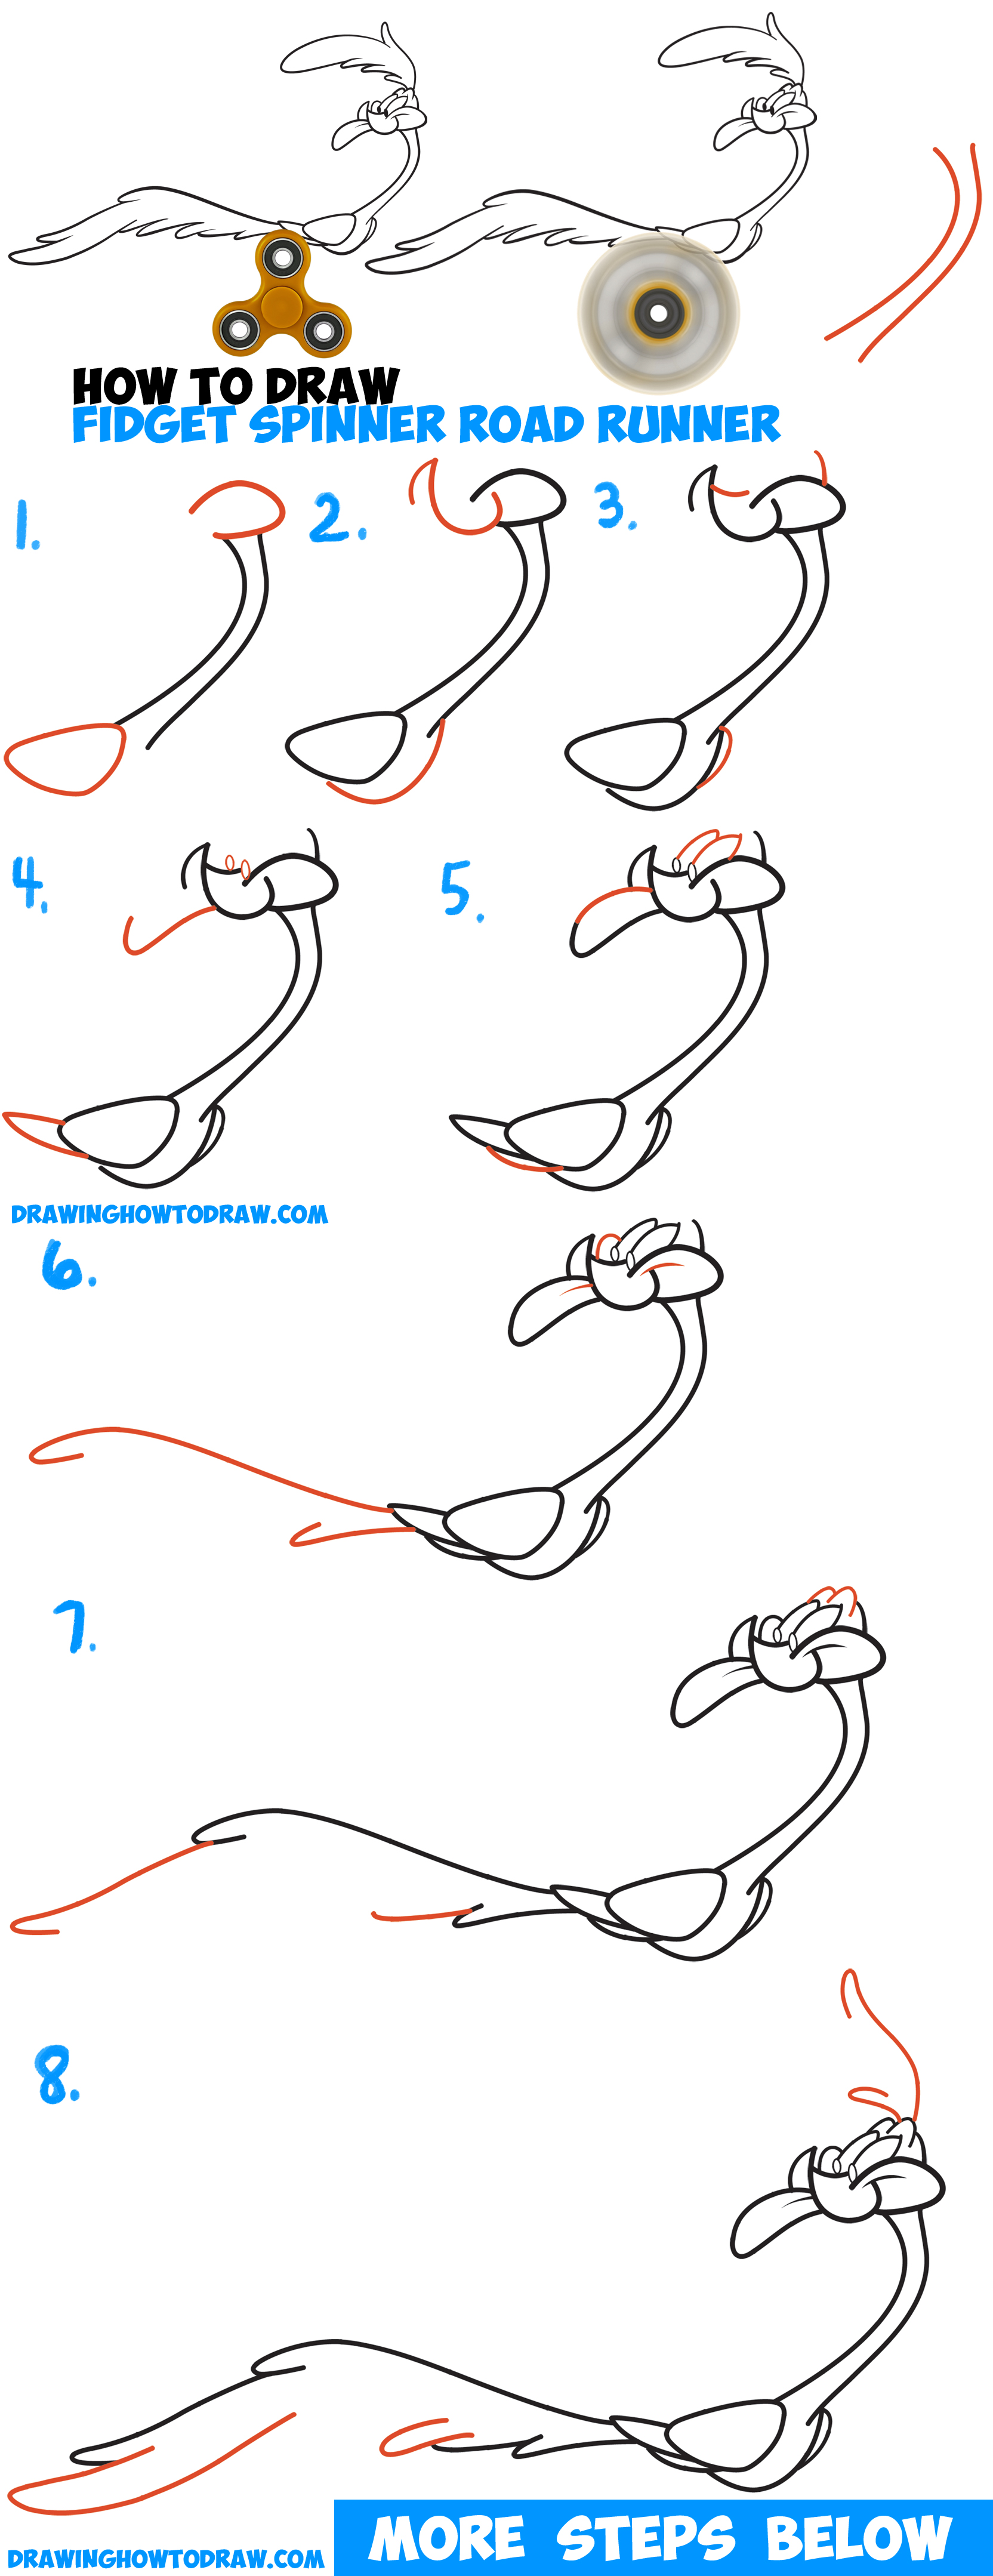 How to Draw Road Runner from Looney Tunes Using Spinning Fidget Spinner as Running Legs with Easy Step by Step Drawing Tutorial